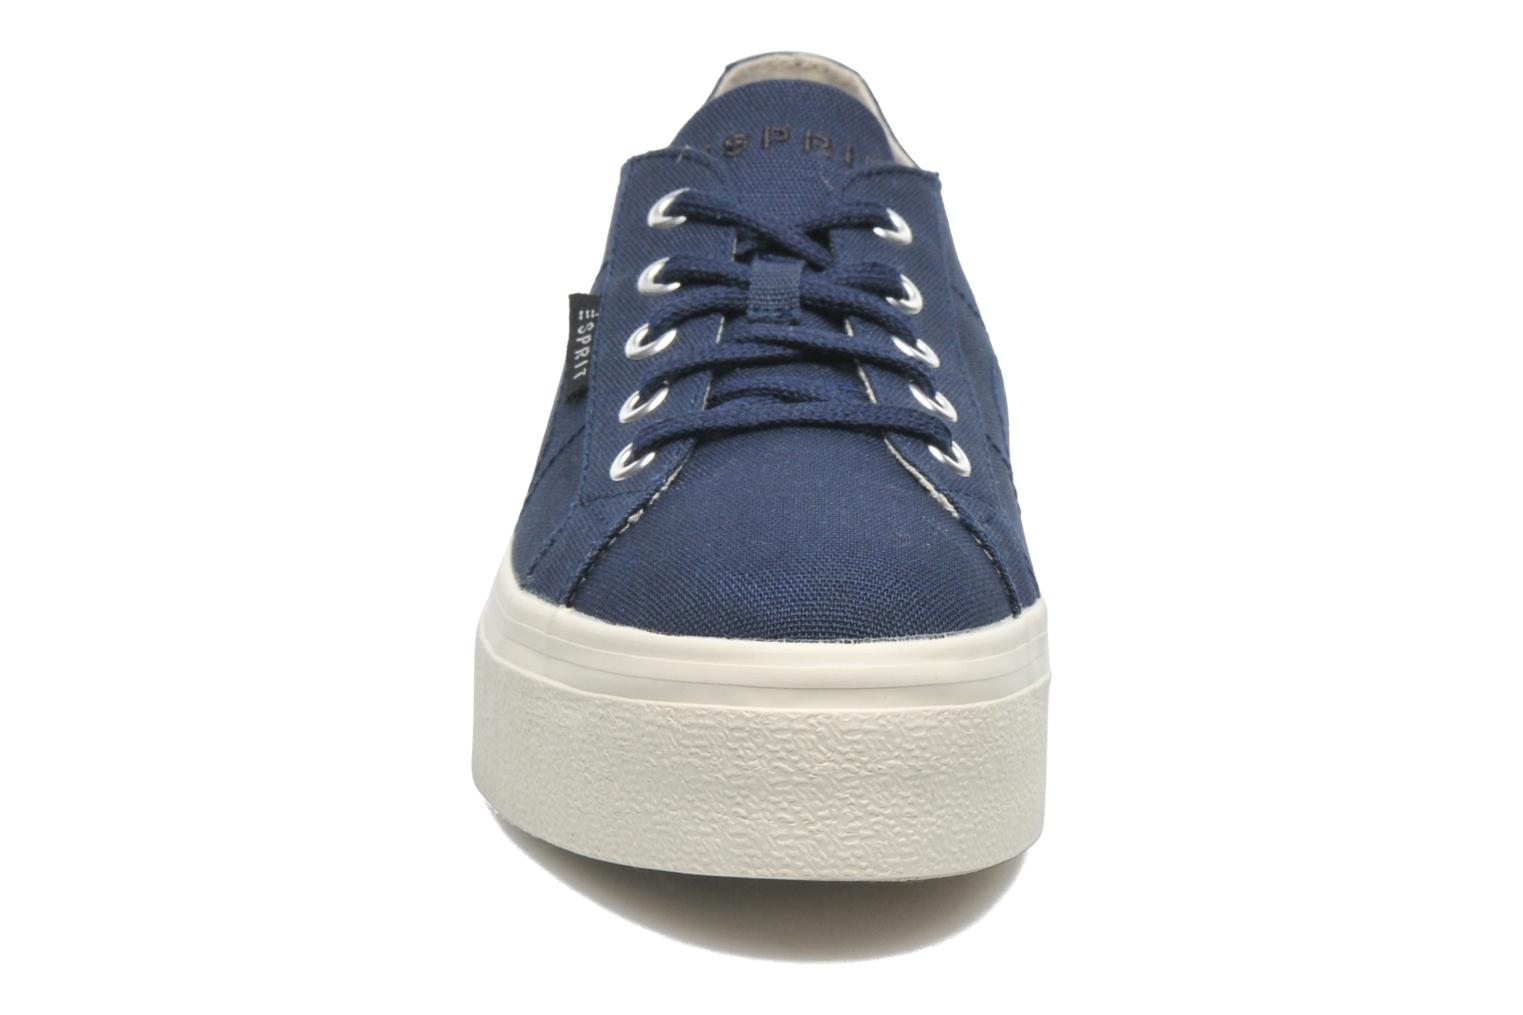 Starry Lace up 045 DARK NIGHT BLUE 411